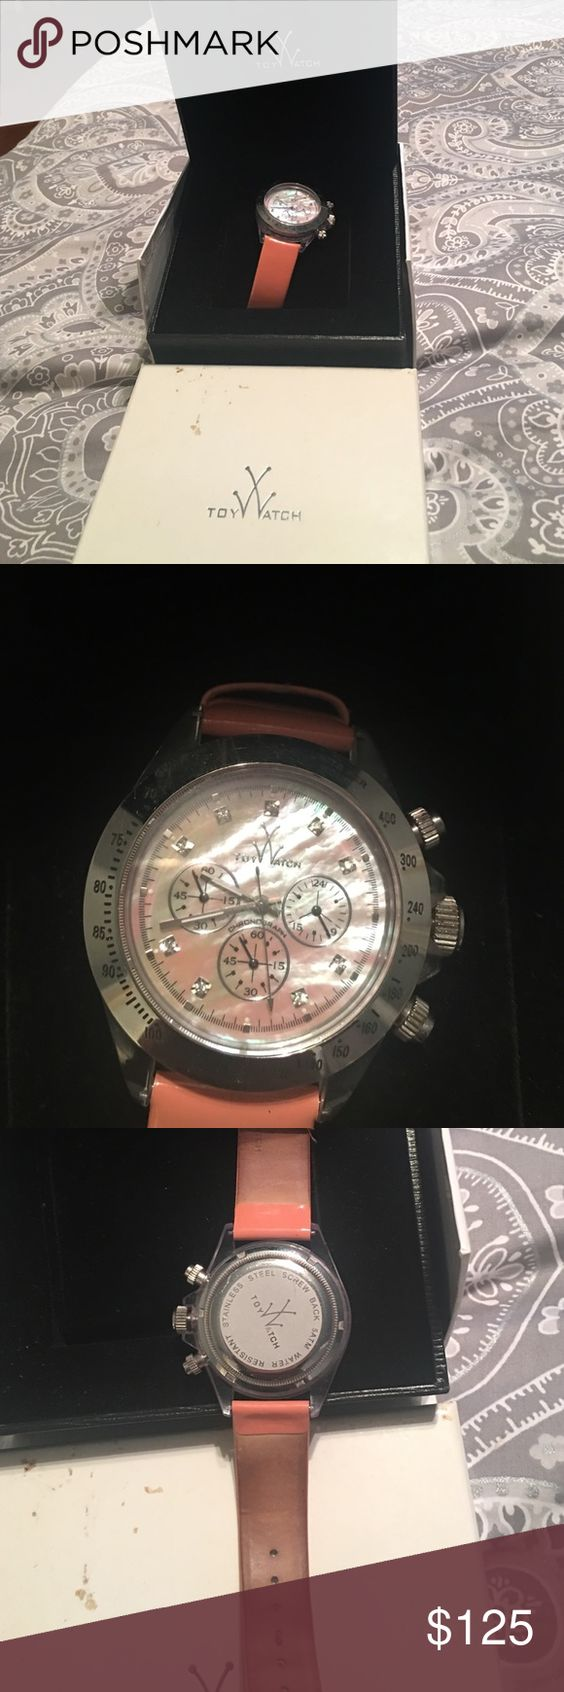 Toy Watch with diamonds Women's stainless steel watch with peach leather band Accessories Watches